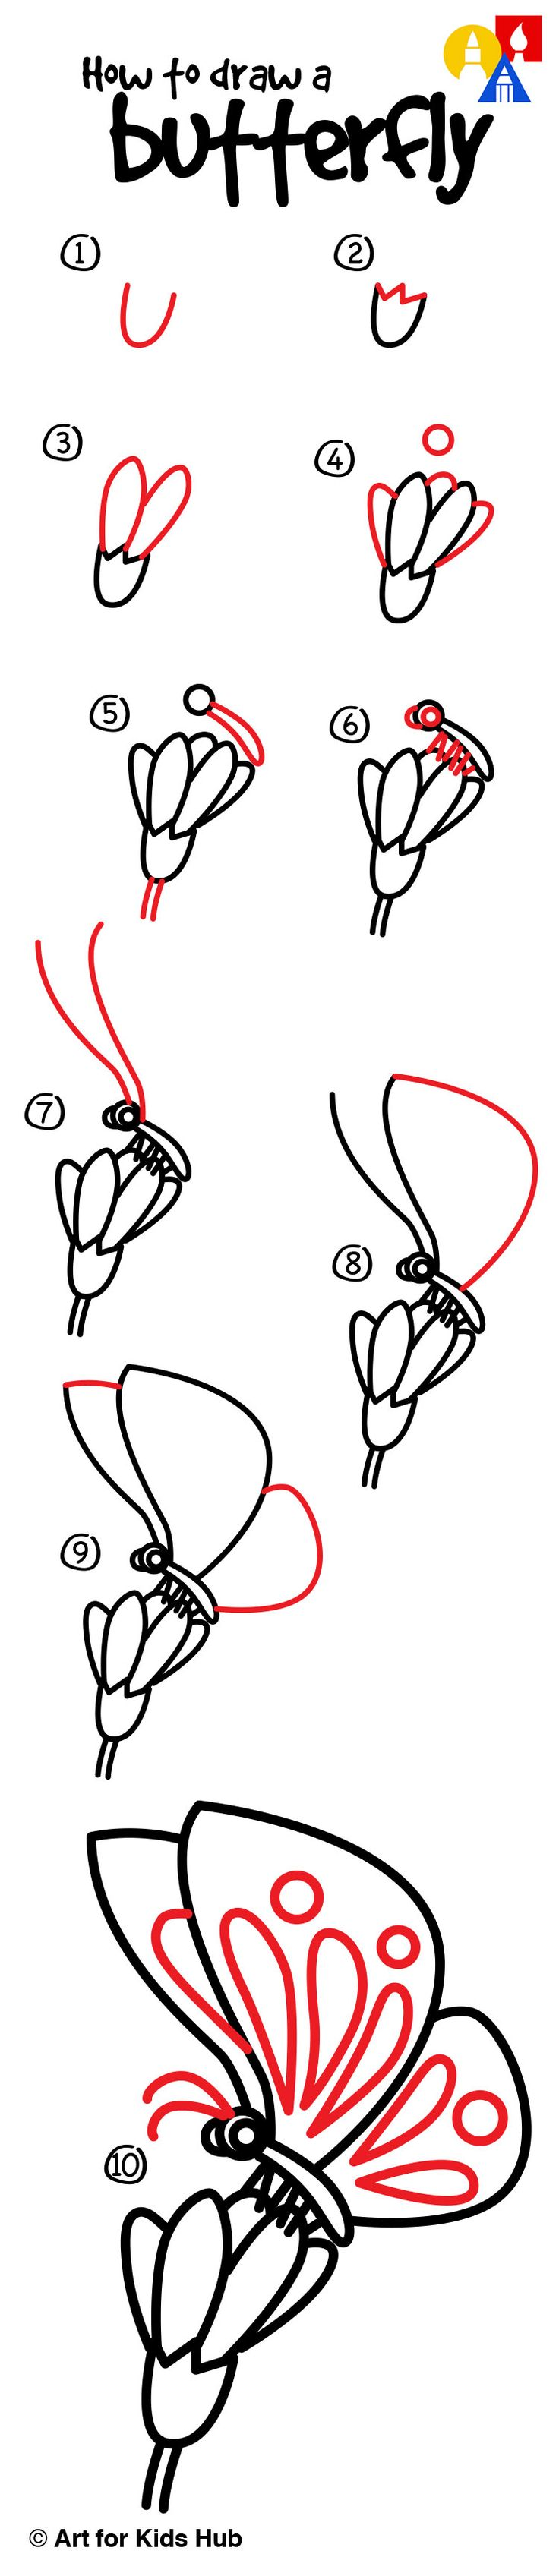 How to draw a butterfly on a flower!